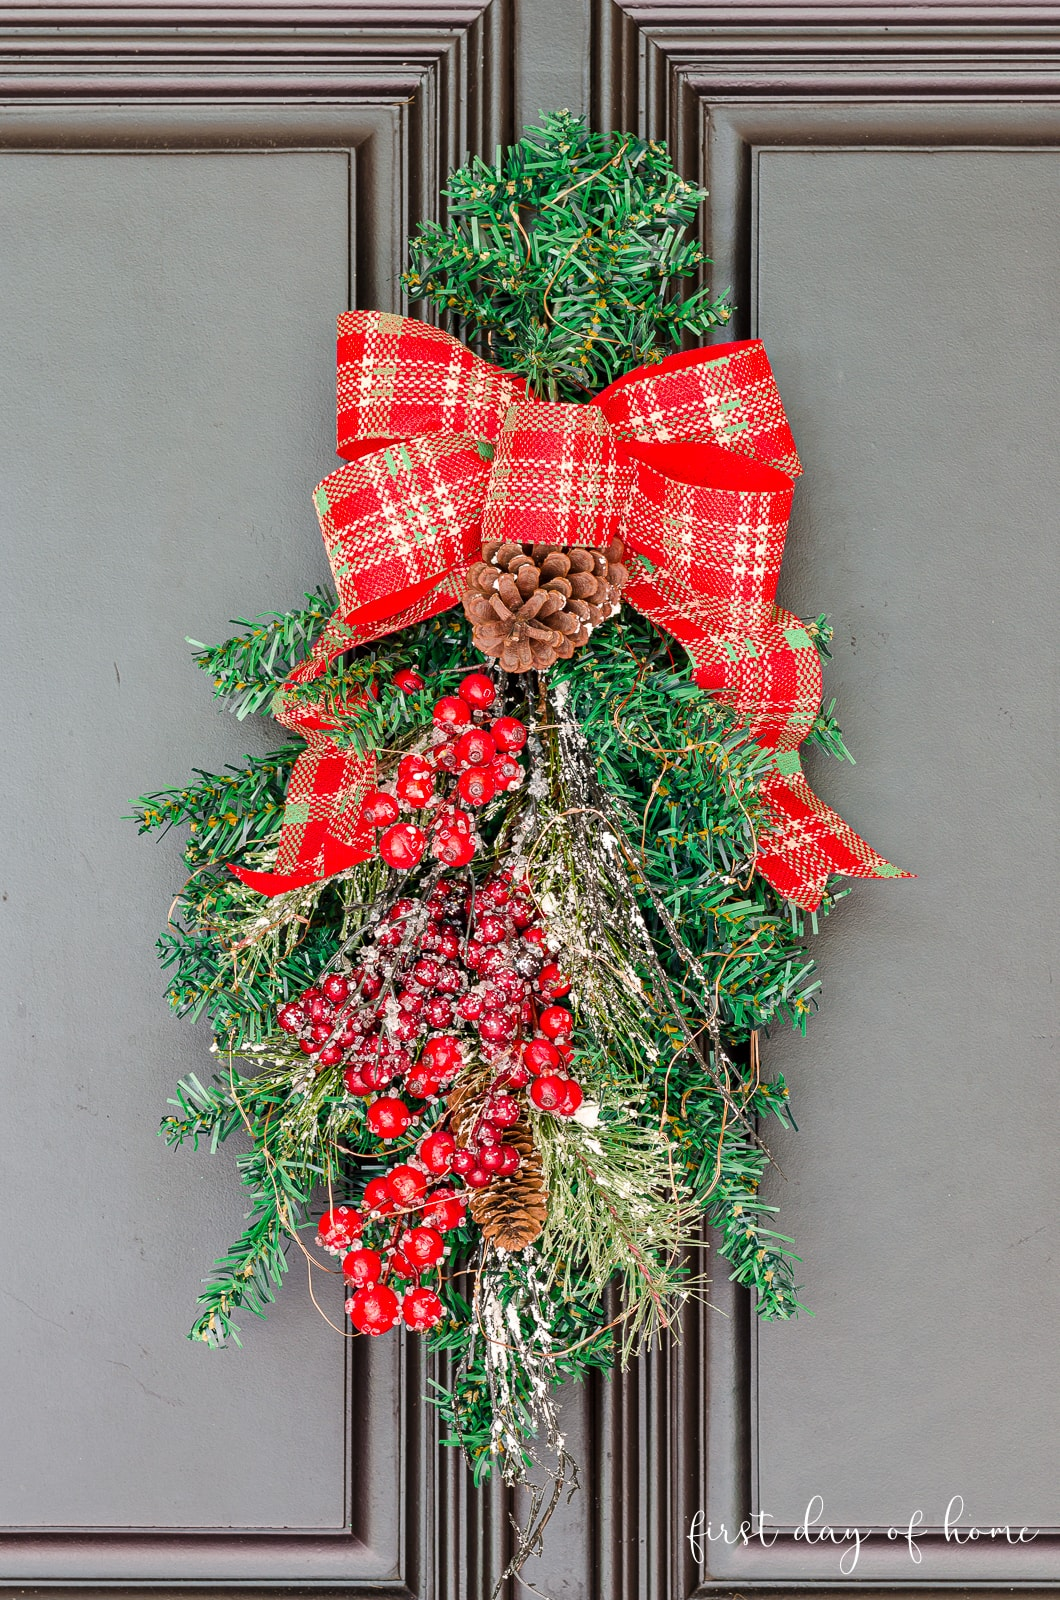 Christmas swag wreath with red ribbon, berries and frosted pine hanging on black front door